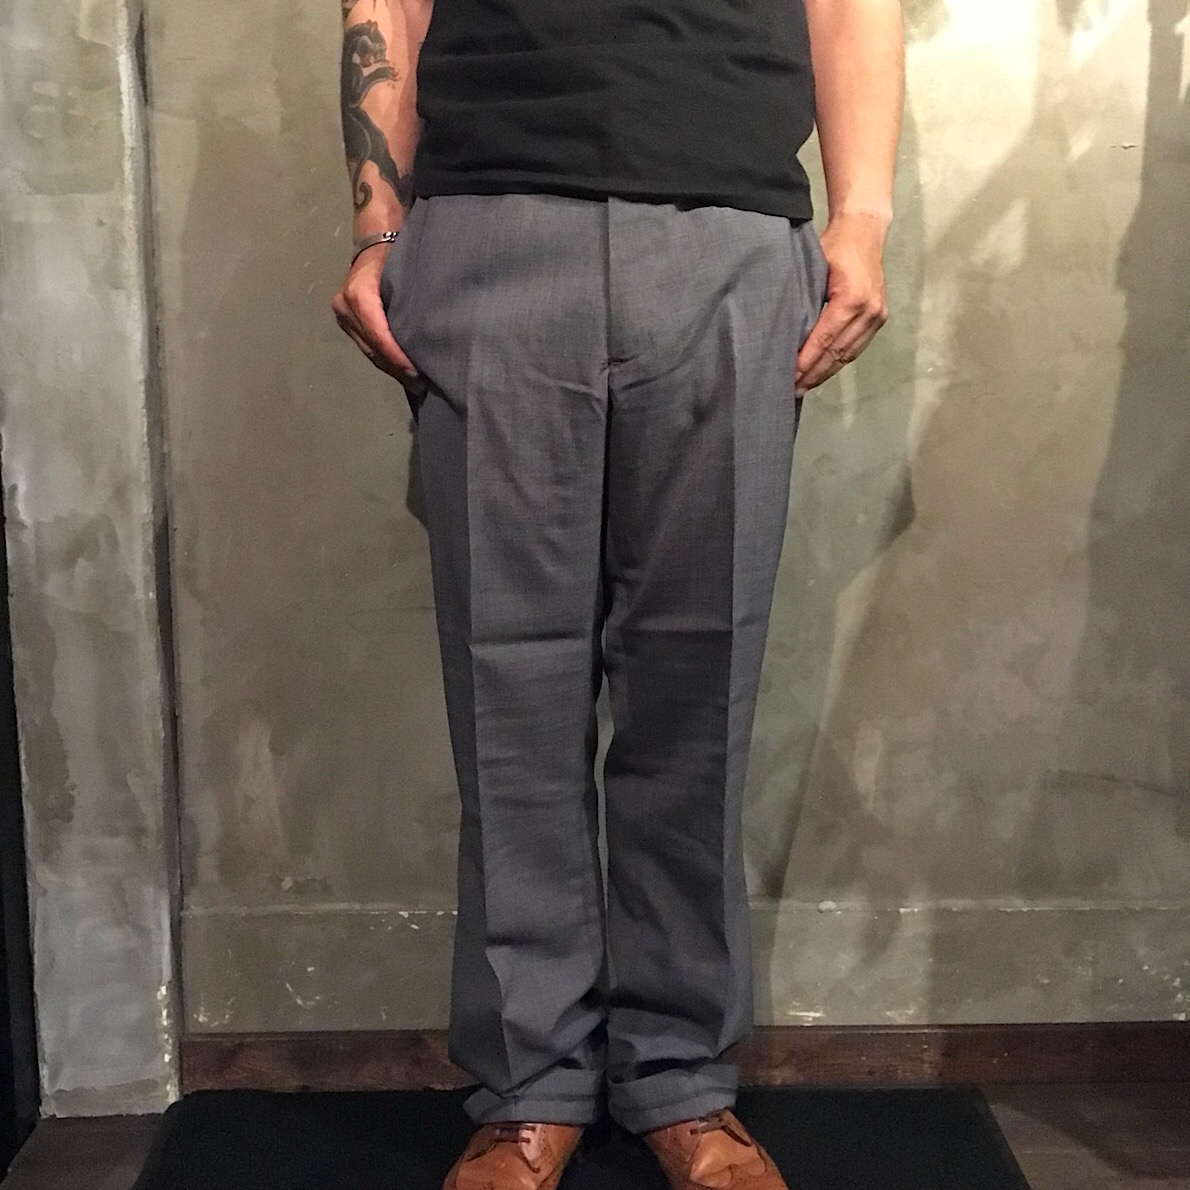 GANGSTERVILLE THUG - PANTS (GRAY)